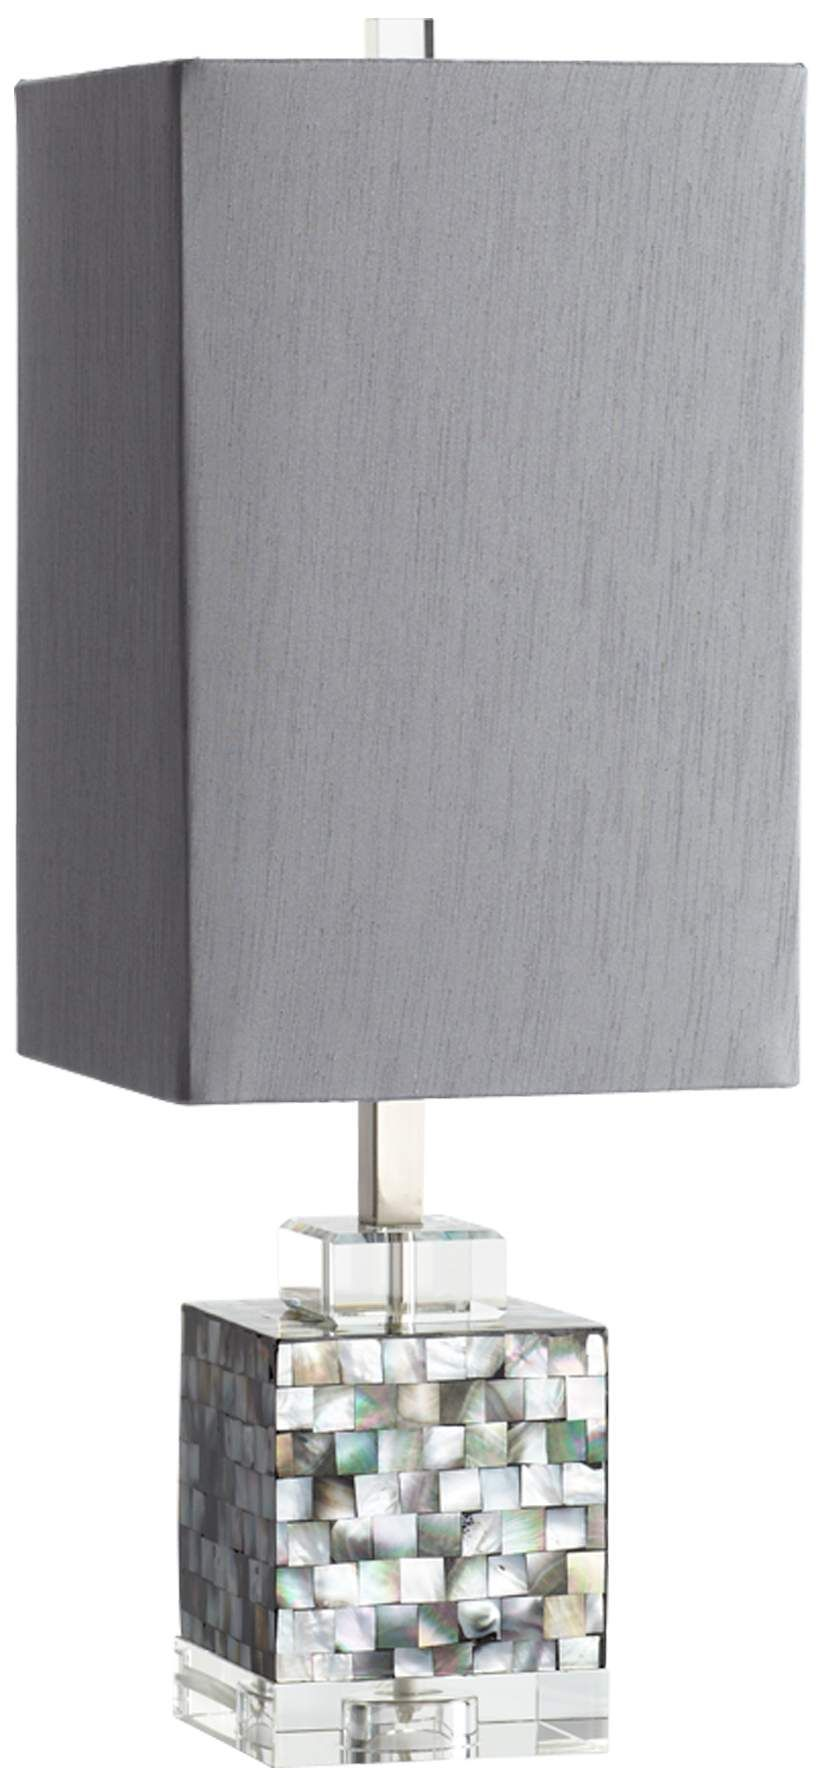 Johor Mother Of Pearl Table Lamp 2j895 Lamps Plus Vintage Table Lamp Grey Table Lamps Small Table Lamp